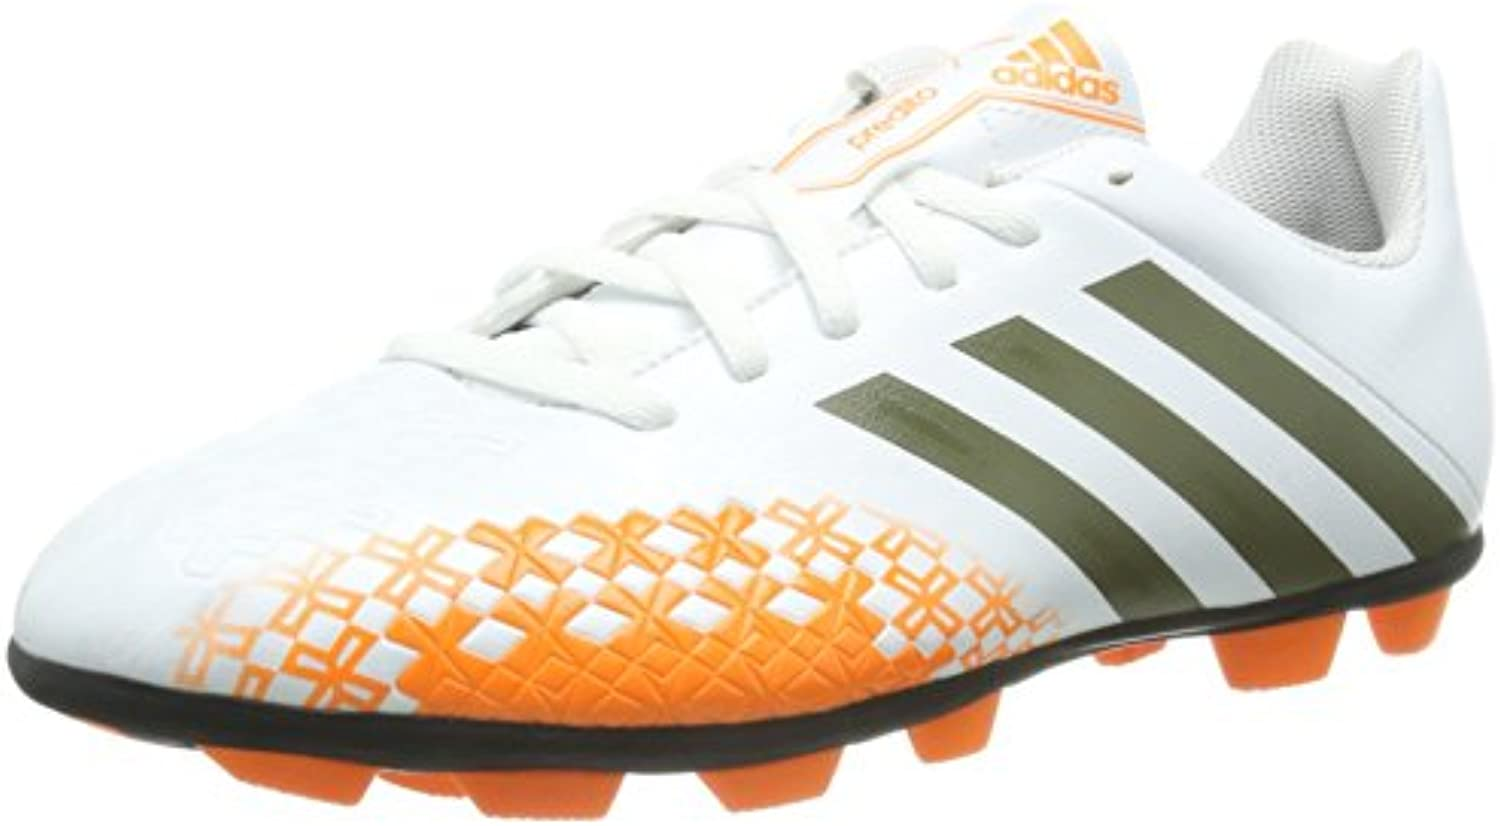 adidas pRouge ito lz chaussures trx hg, les chaussures lz de foot 51ef07